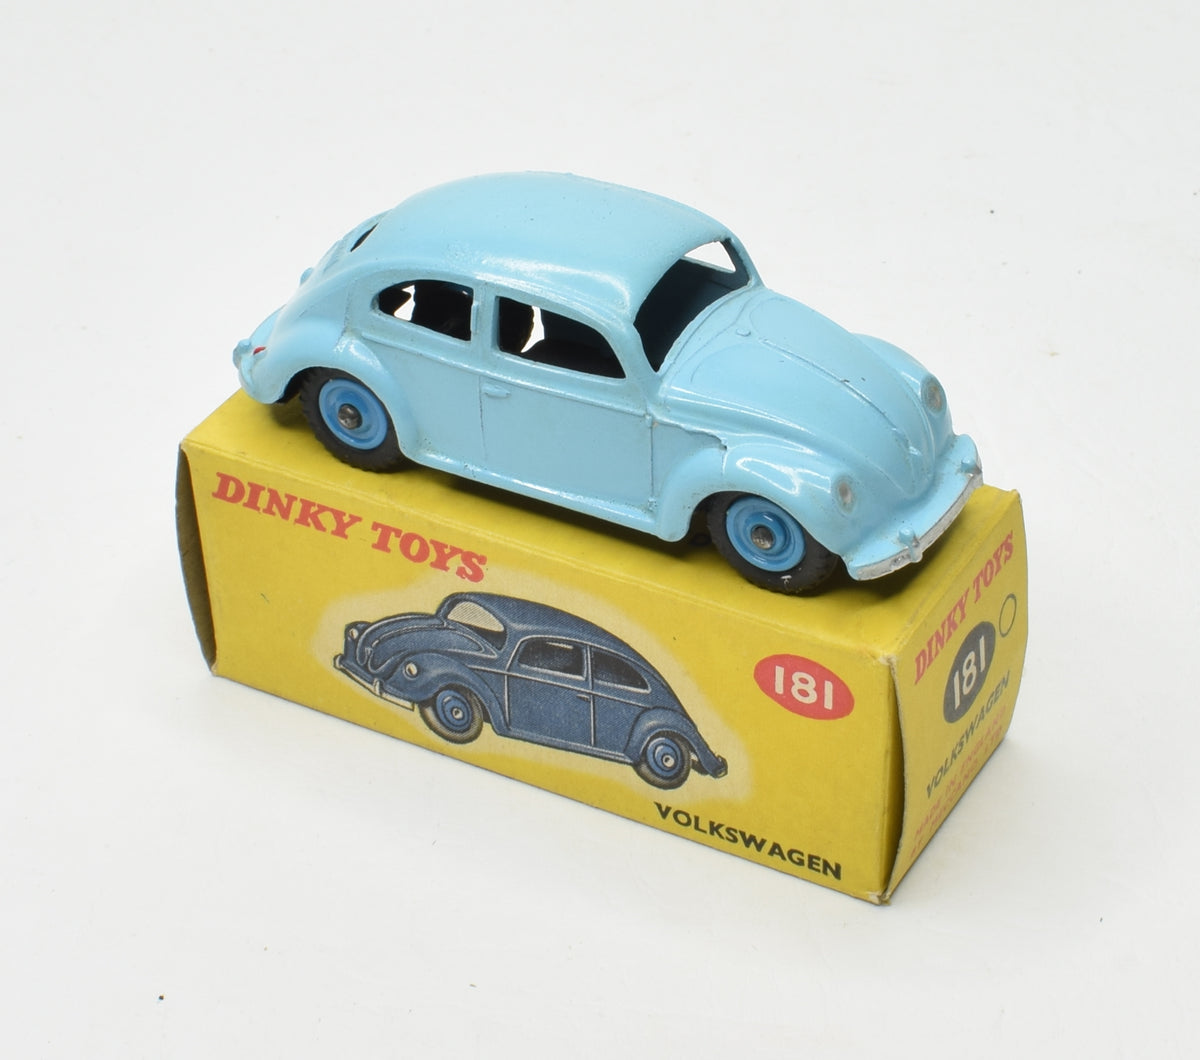 Dinky toys 181 VW Beetle Virtually Mint/Boxed (Plastic hubs)